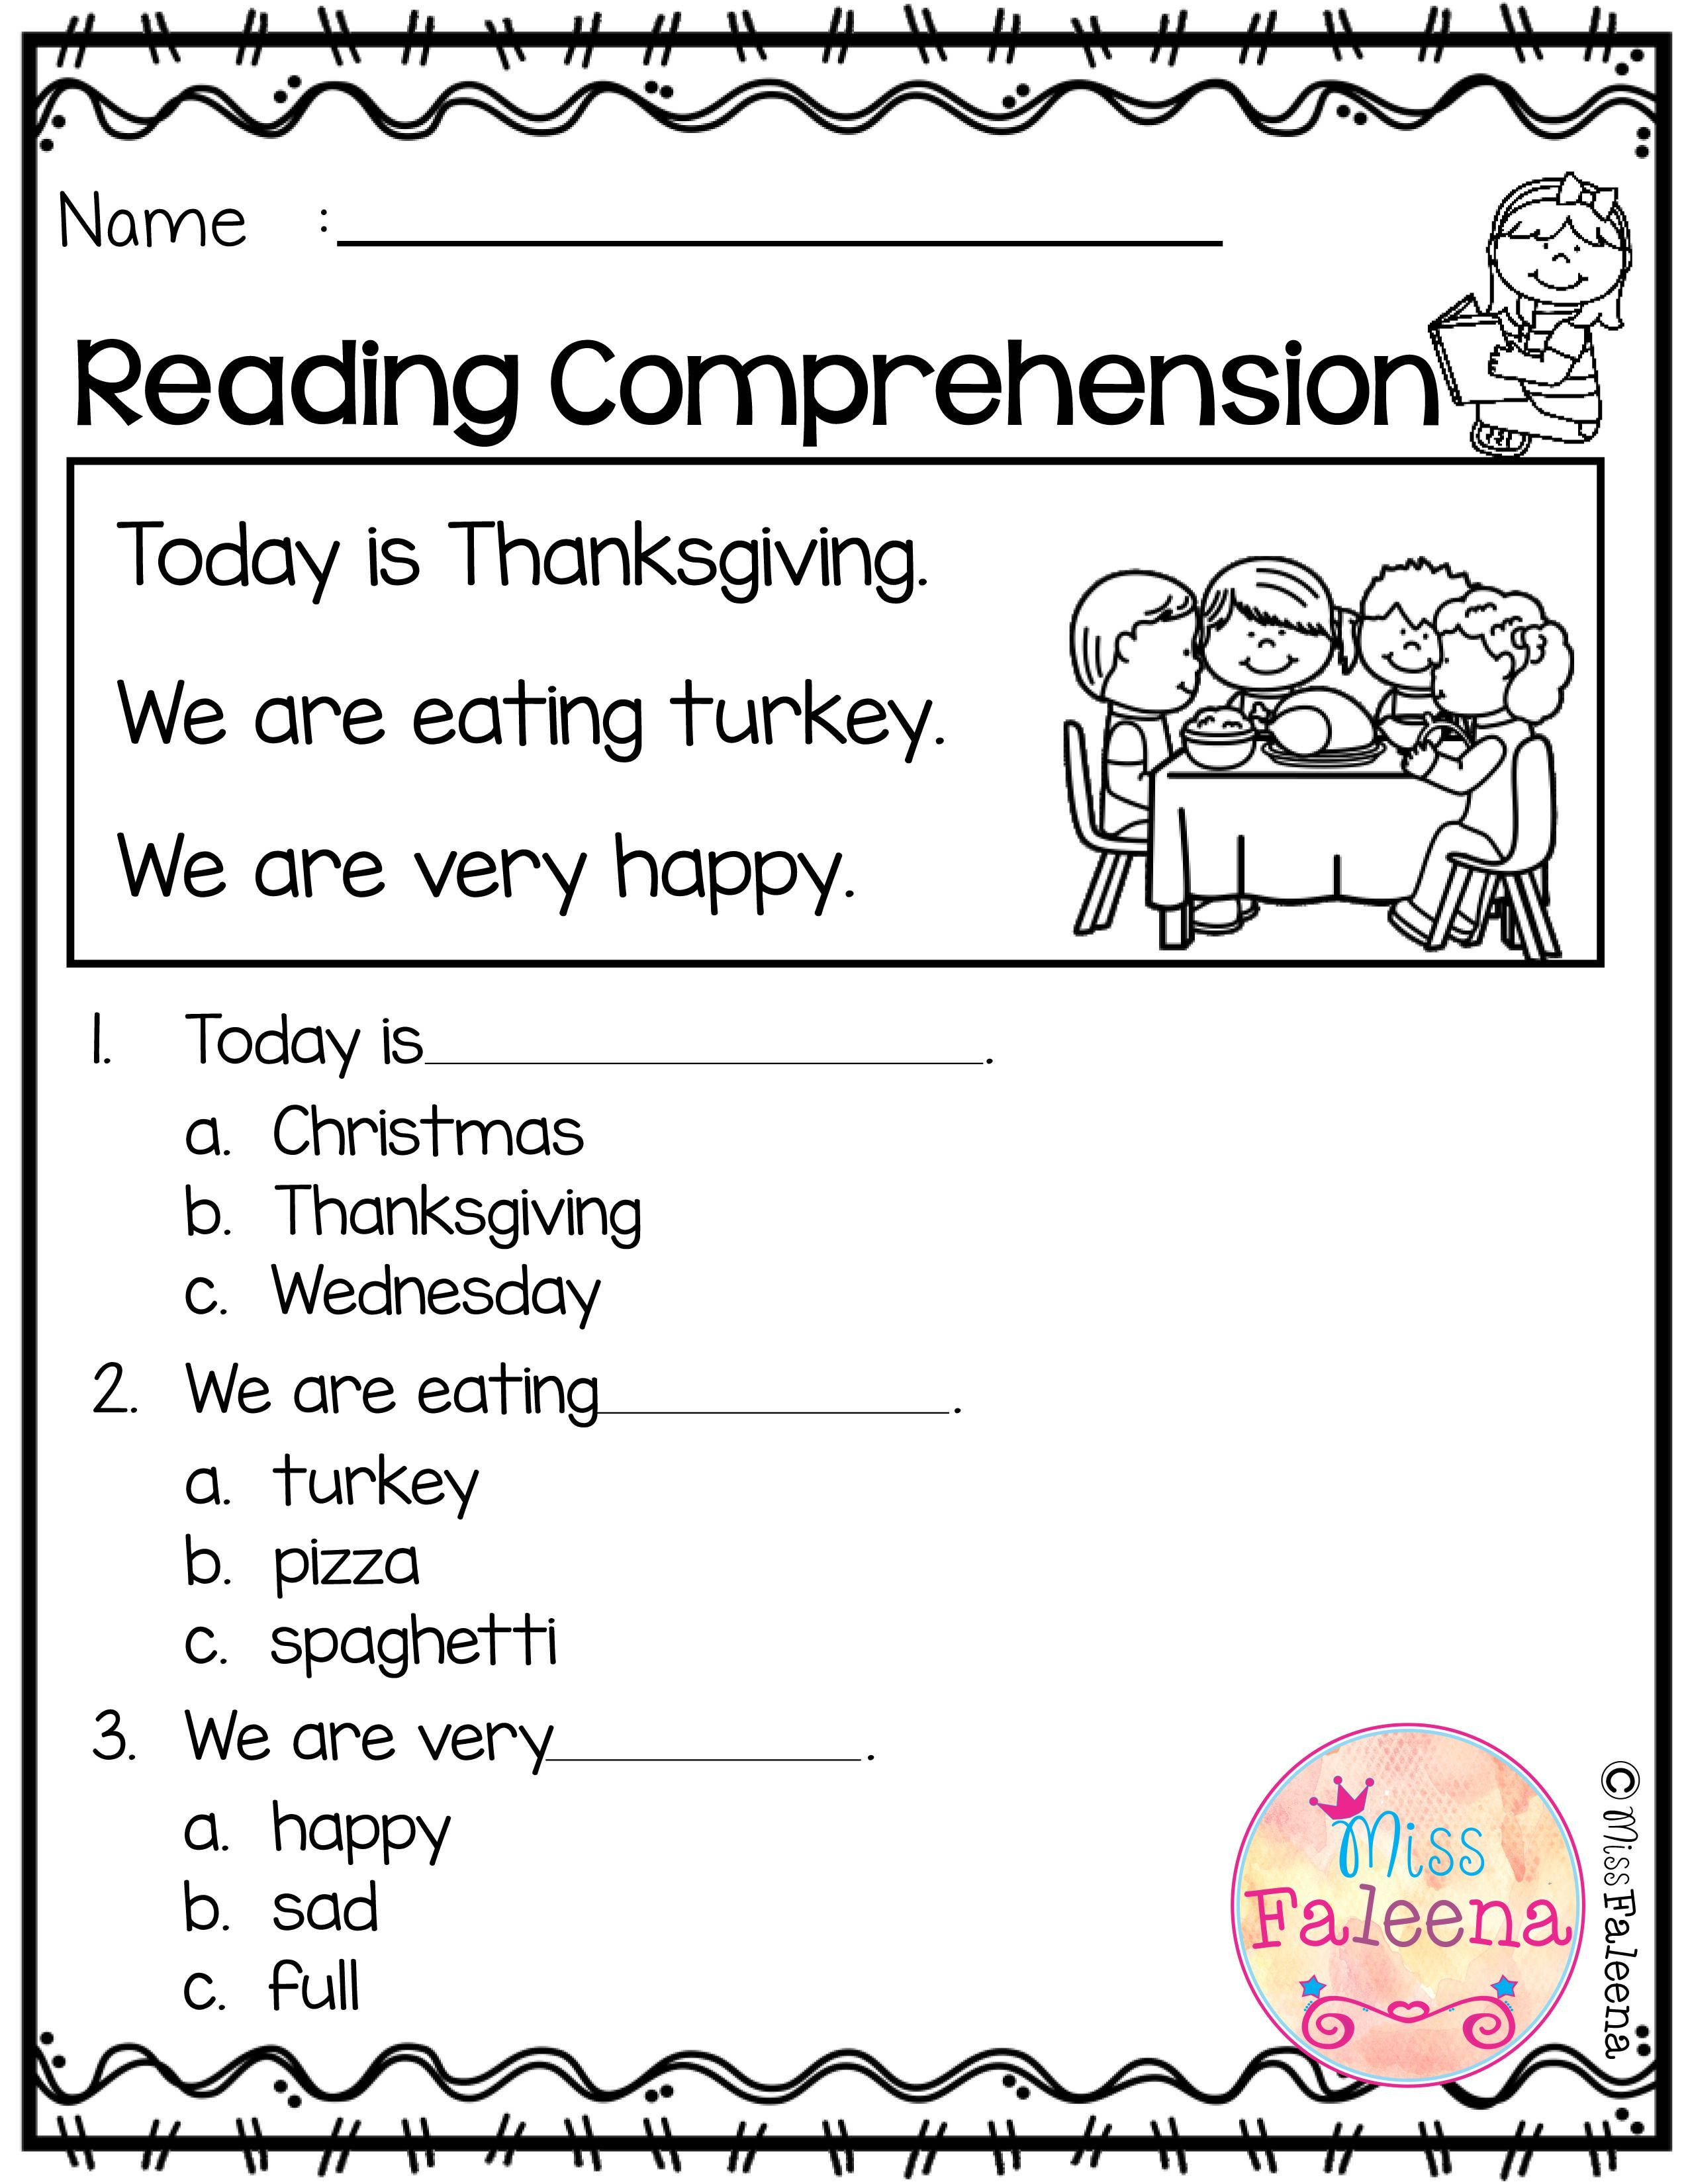 Comprehension Worksheets for Kindergarten November Reading Prehension